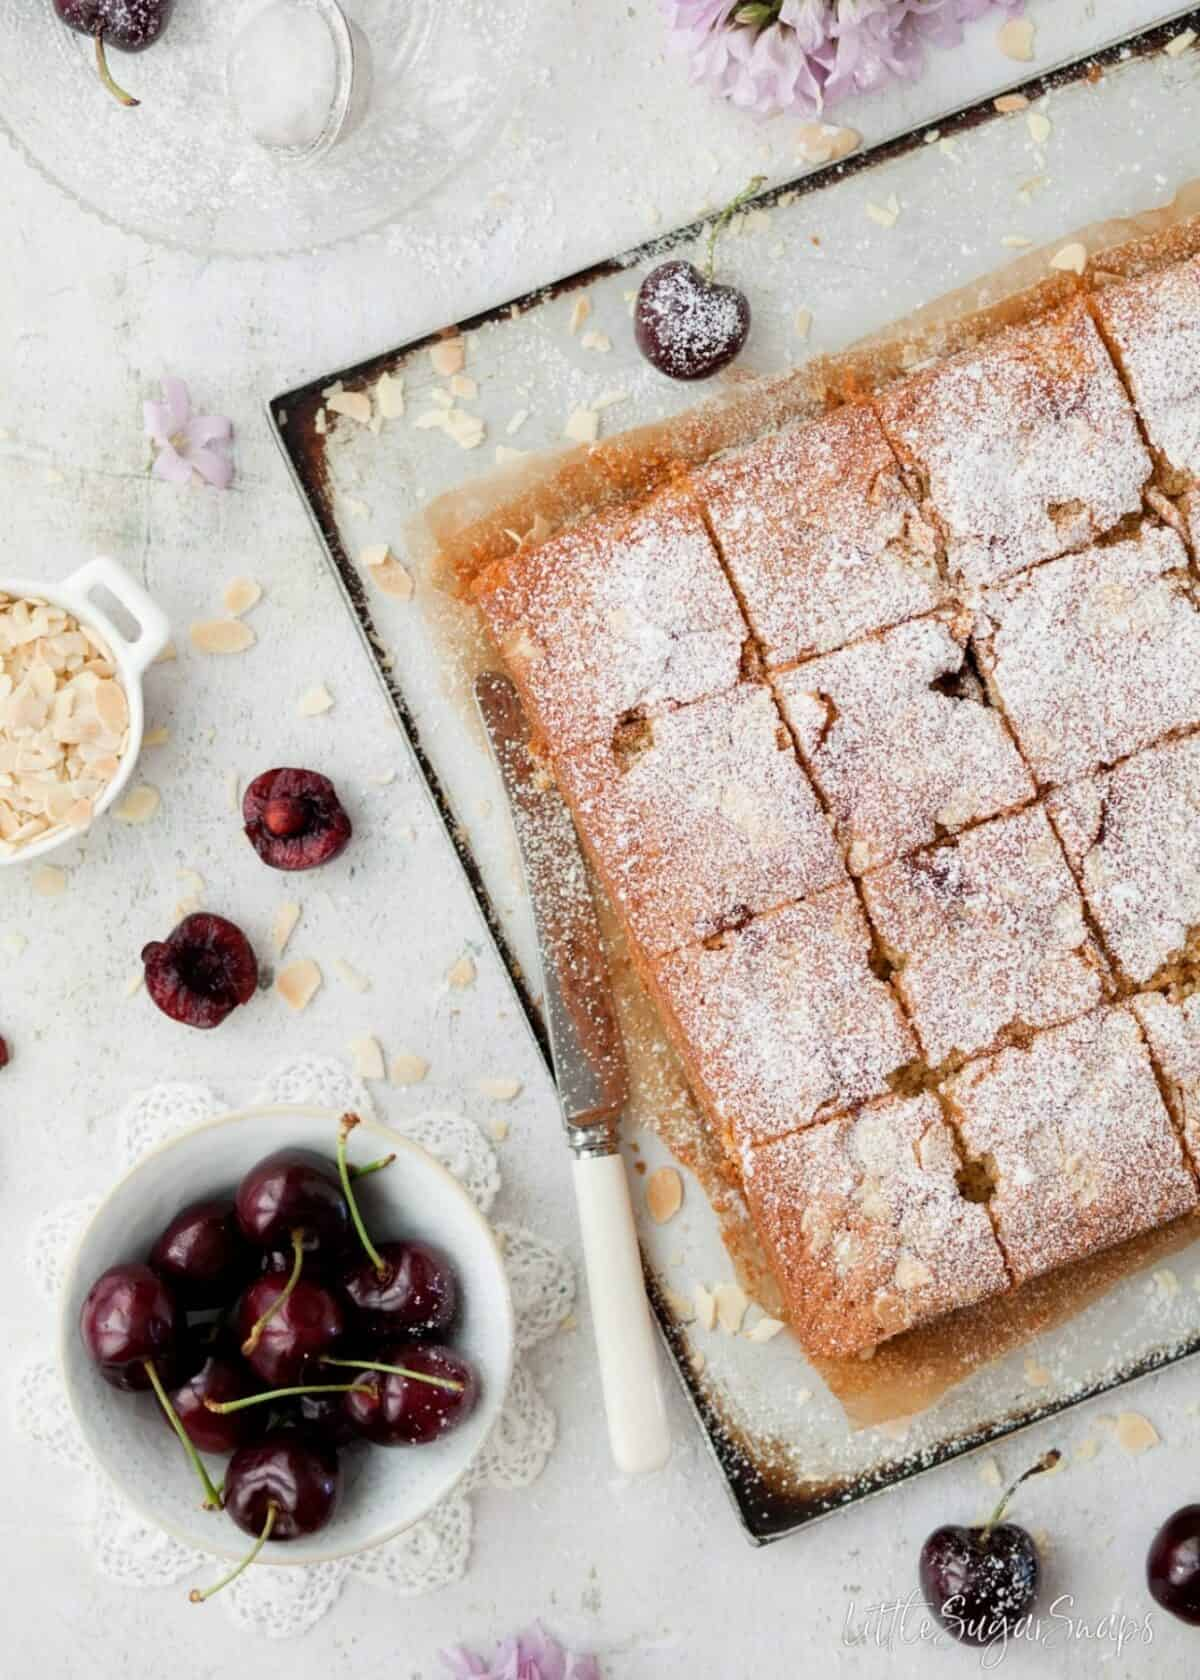 A cherry and almond cake dusted with icing sugar and cut into squares.